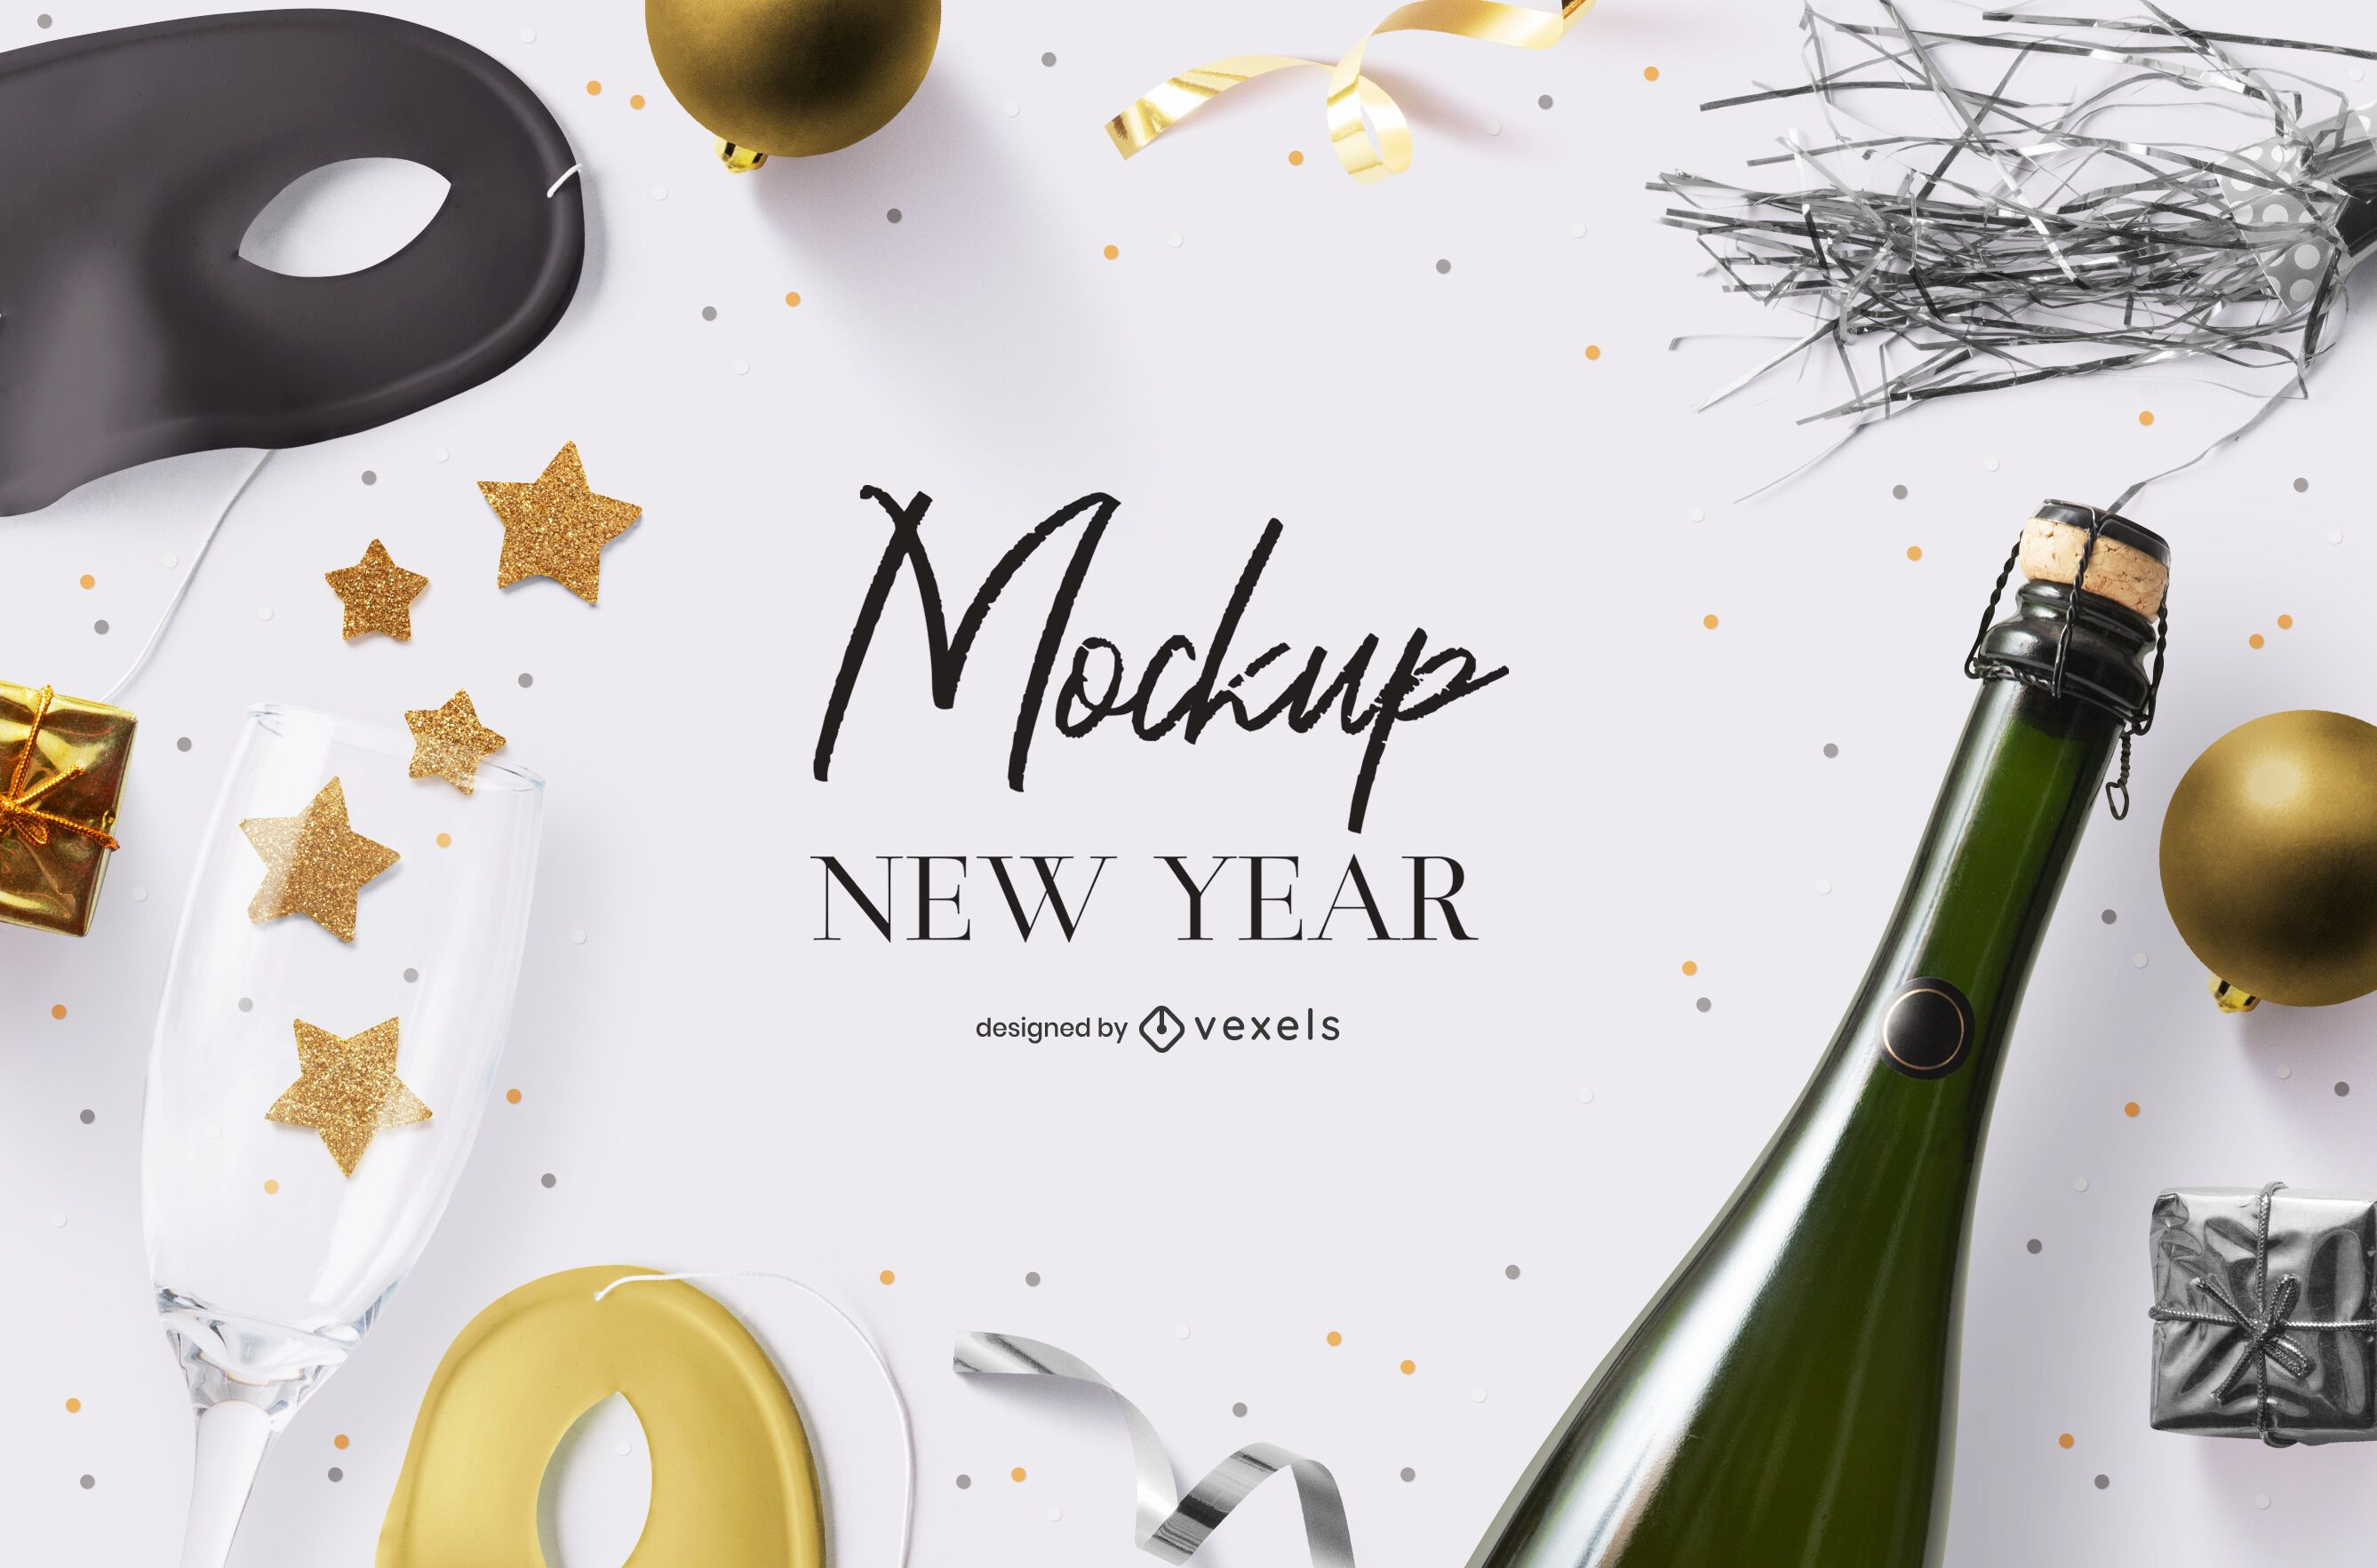 New year party mockup psd composition